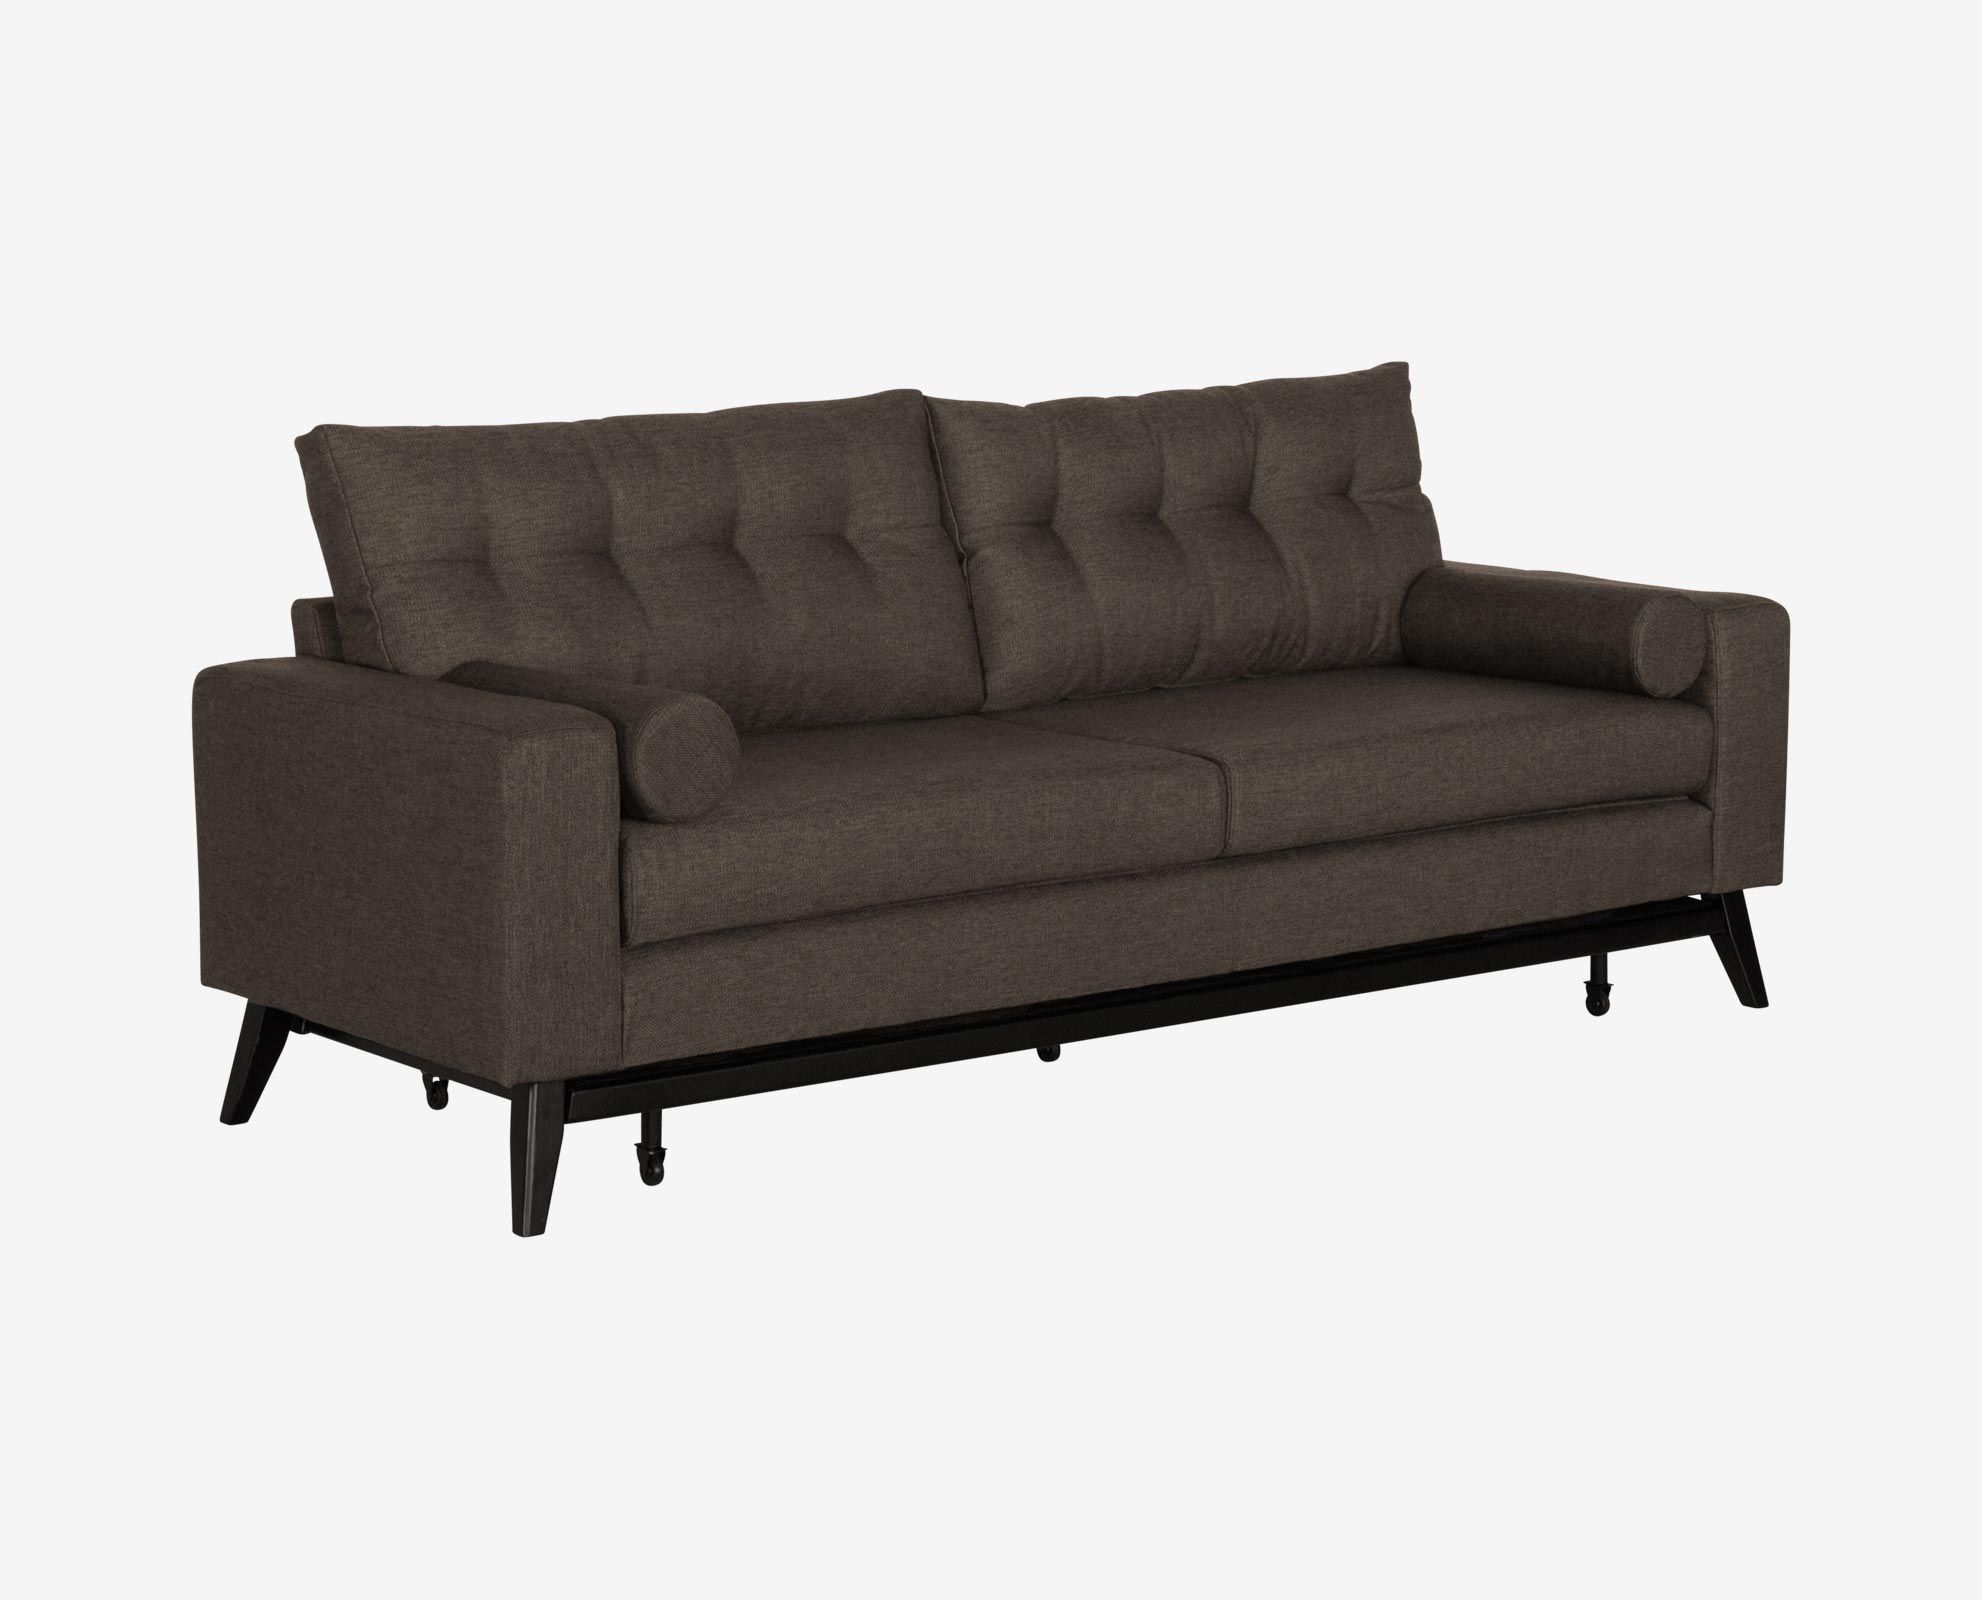 dania the kenora sofa sleeper offers clean lines angled feet and rh pinterest com Dania Sofa Review Dania Leather Sofa